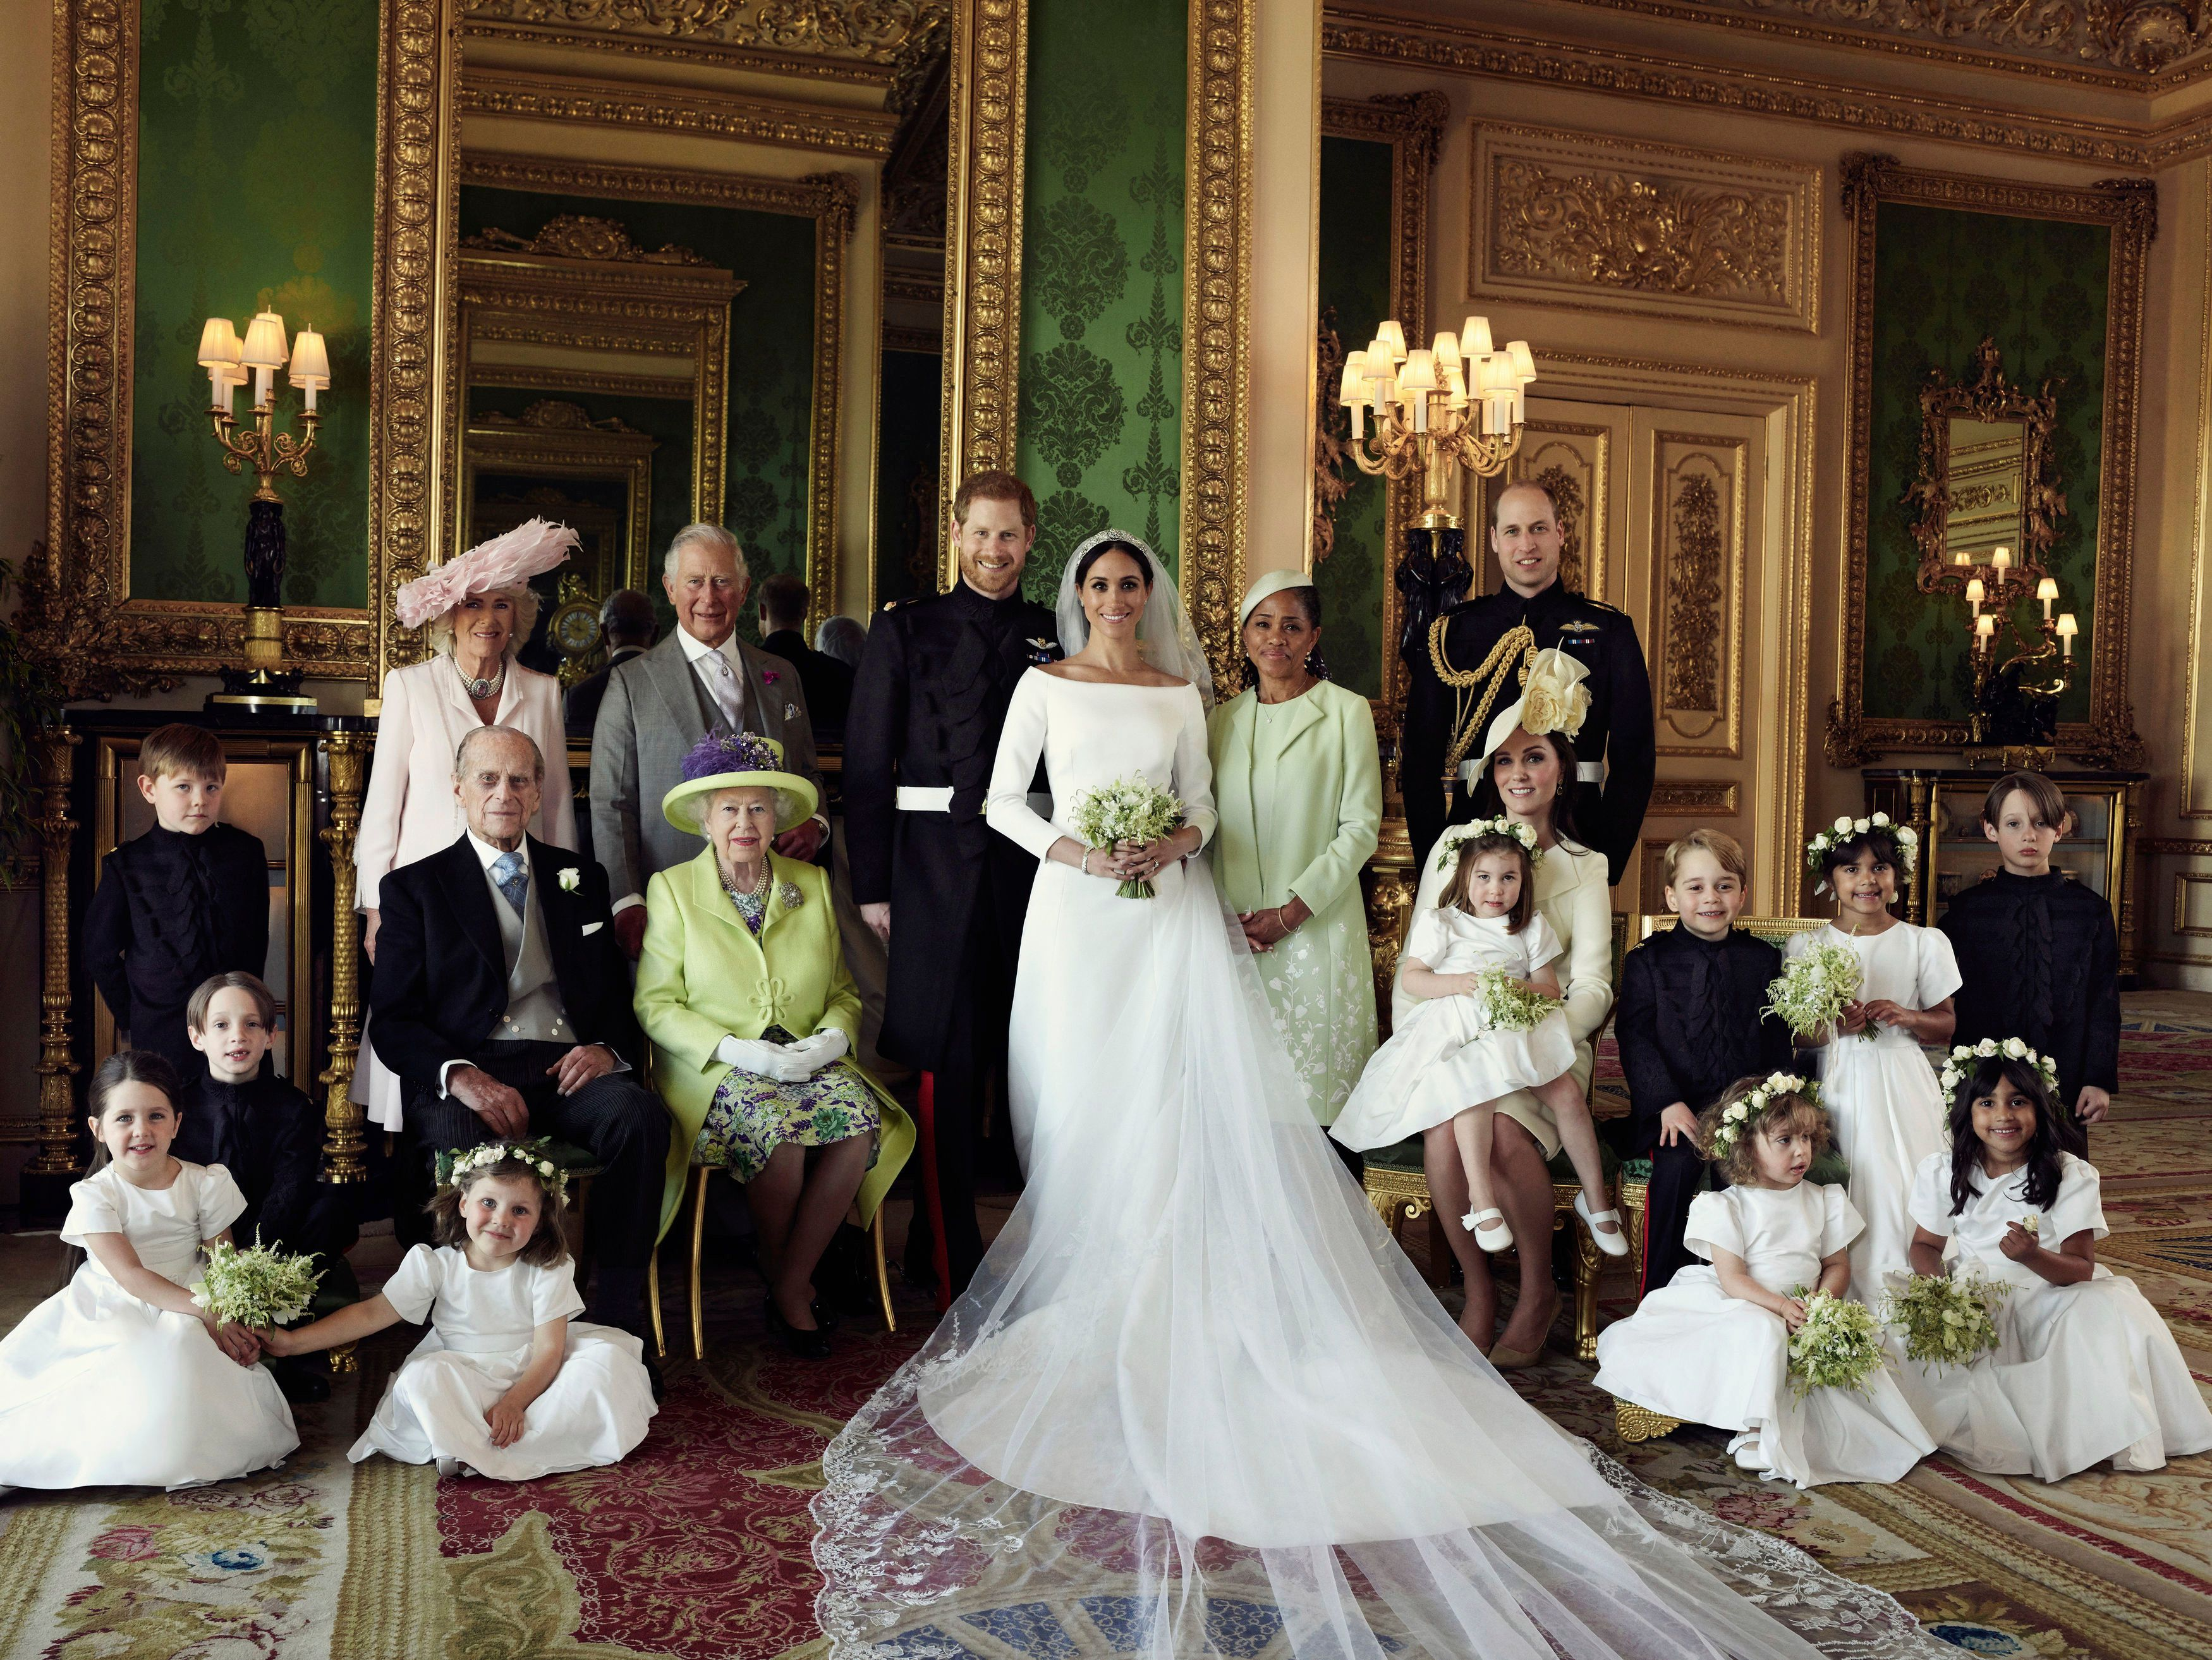 Royal wedding 2018: See Prince Harry and Meghan Markle's official wedding portraits